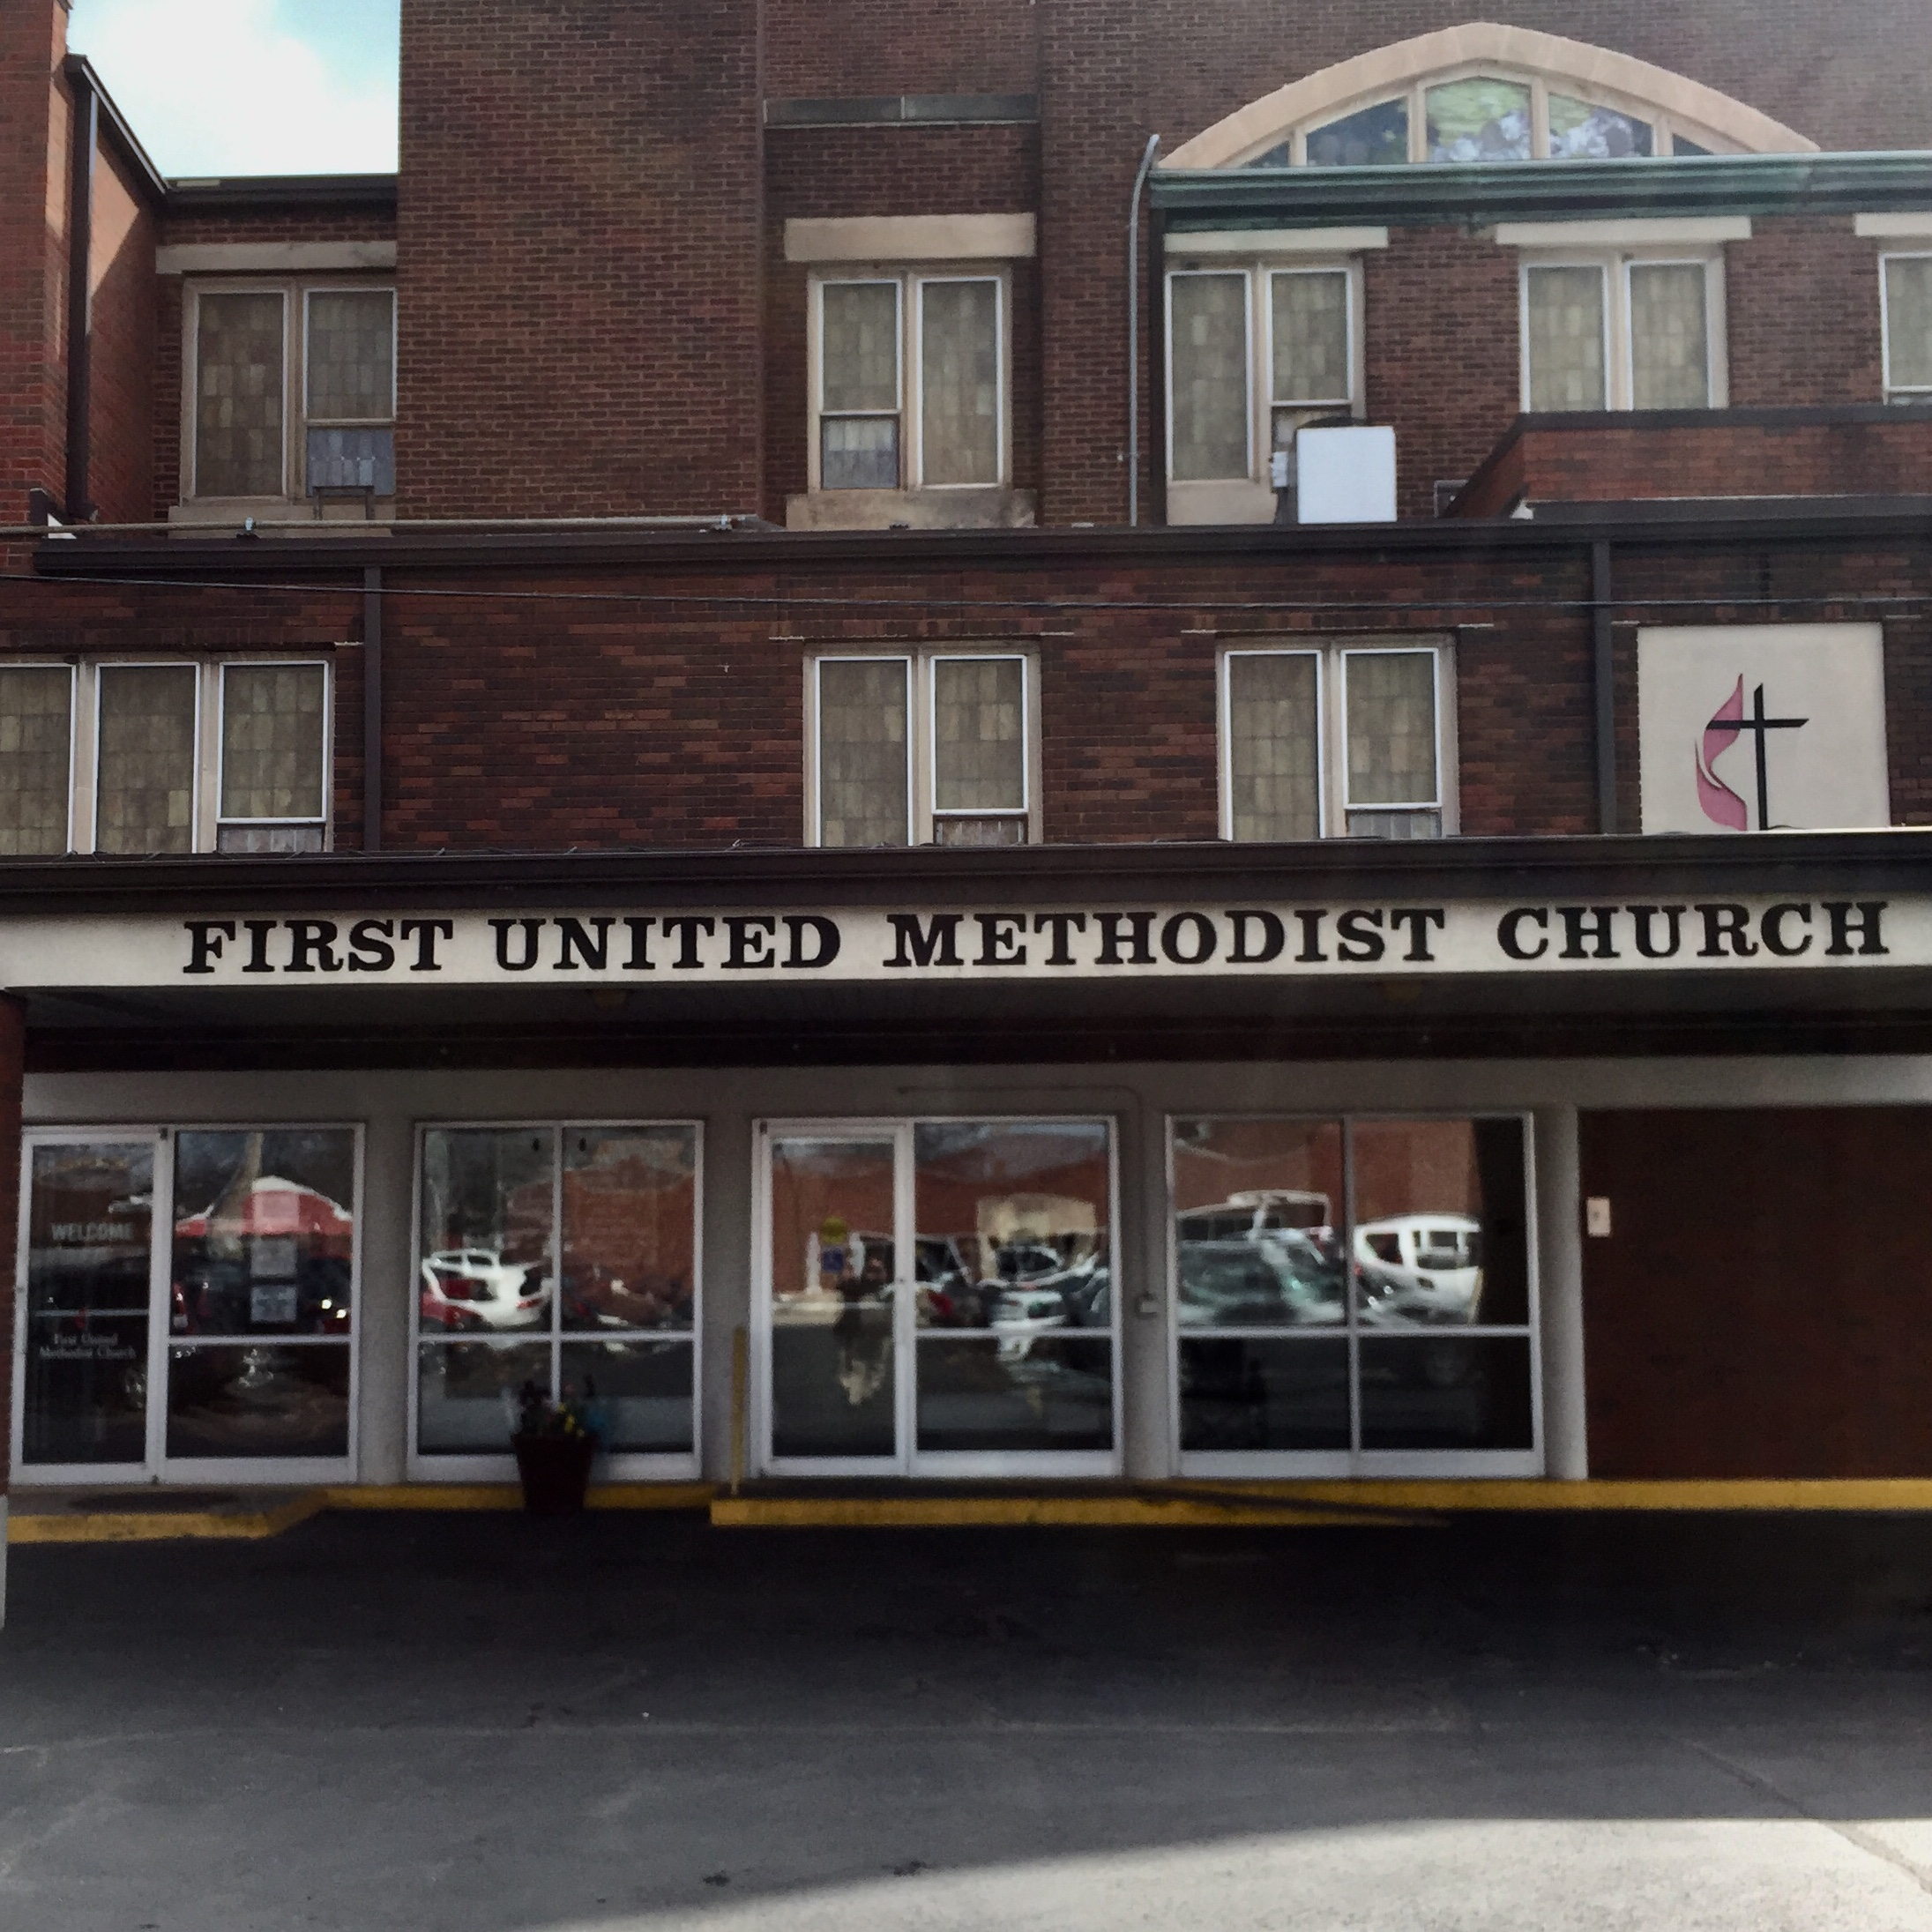 First United Methodist Church entrance (from Lafayette) (address: 333 N Main St, South Bend, IN)